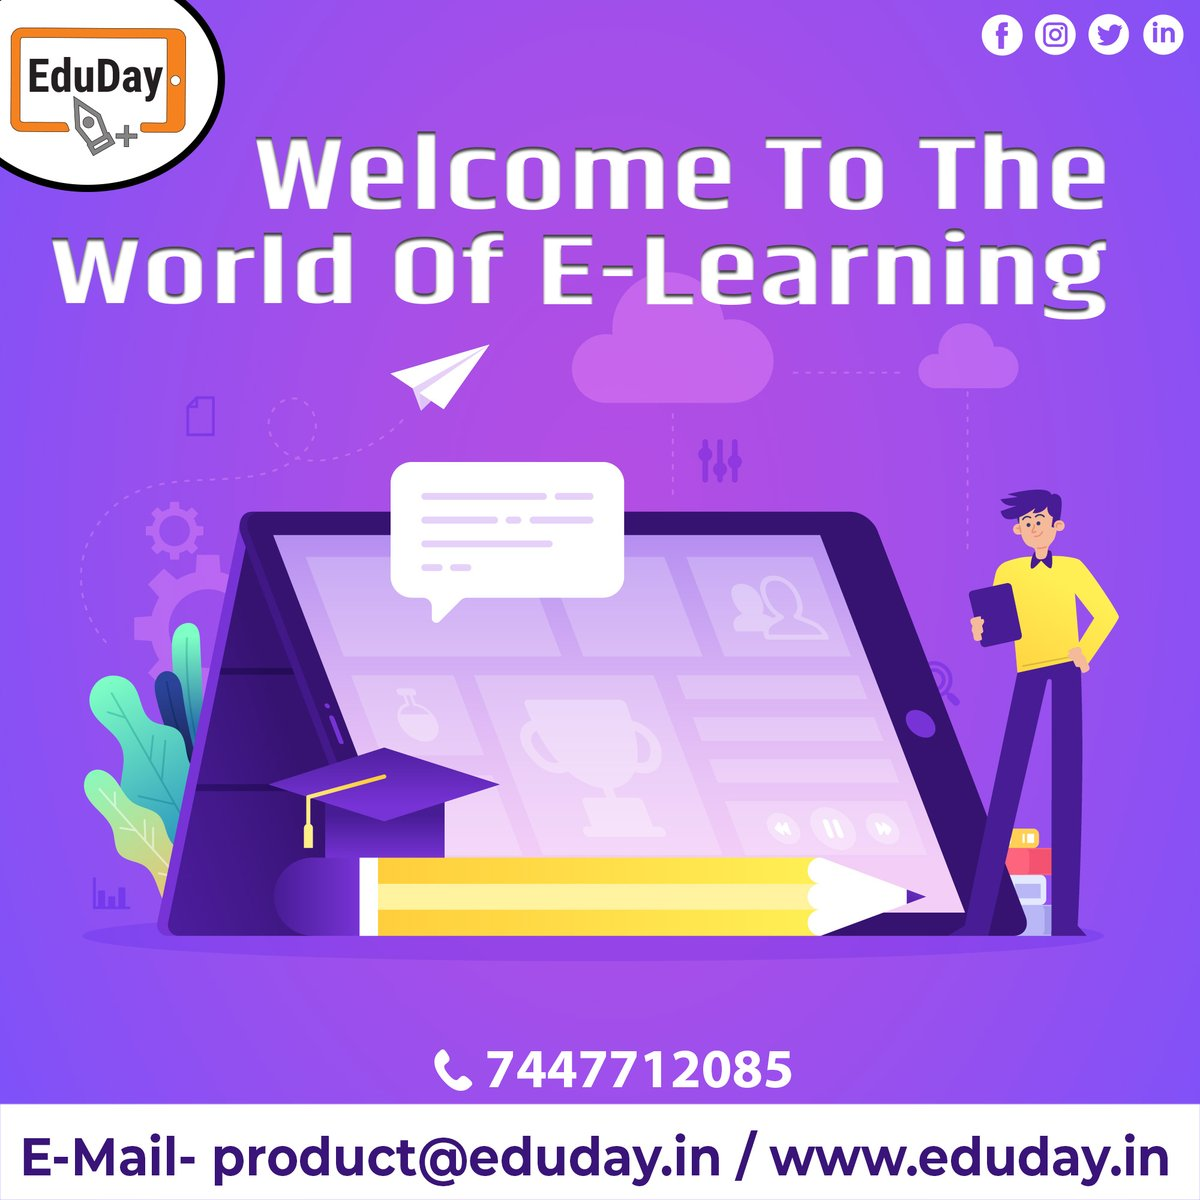 Transform Teaching, Inspire Learning and Deliver a world-class Student Experience.  Get in touch to know more:- Phone : +91 7447712085 E-Mail: product@eduday.in visit:- http://www.eduday.in   #eduday #edudayindia #pune #india #tab #tablets #CoachingInstitute #Coachingclassesspic.twitter.com/eUsogJD7zP